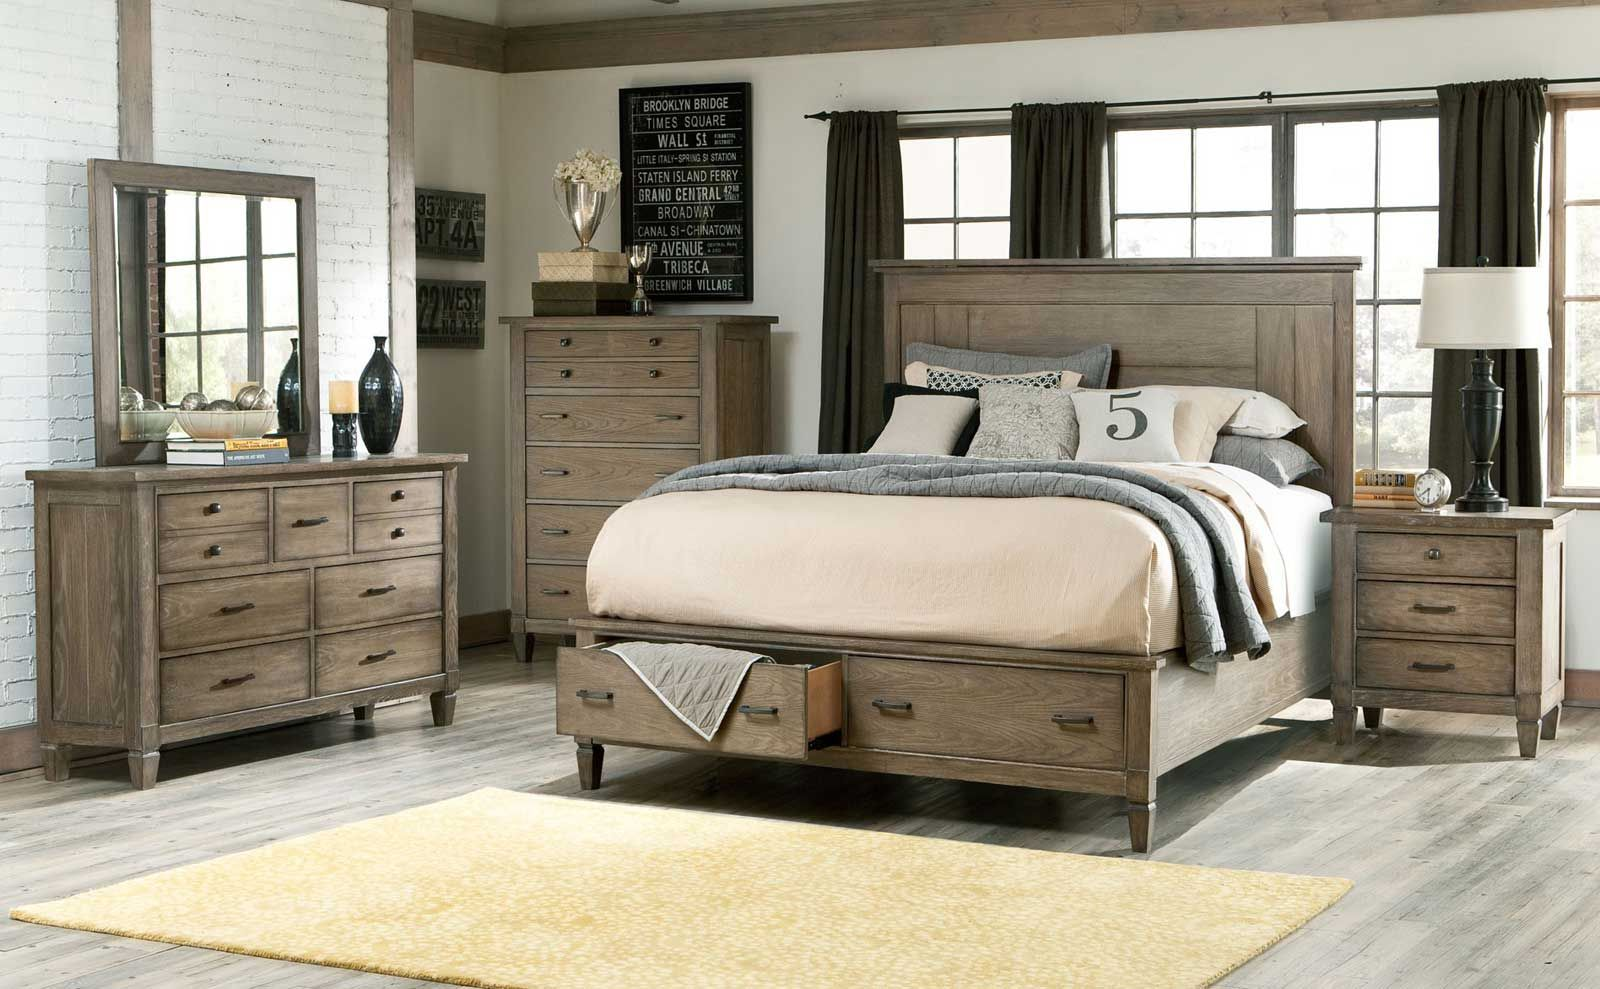 Why You Should Purchase King Bedroom Furniture Sets In 2020